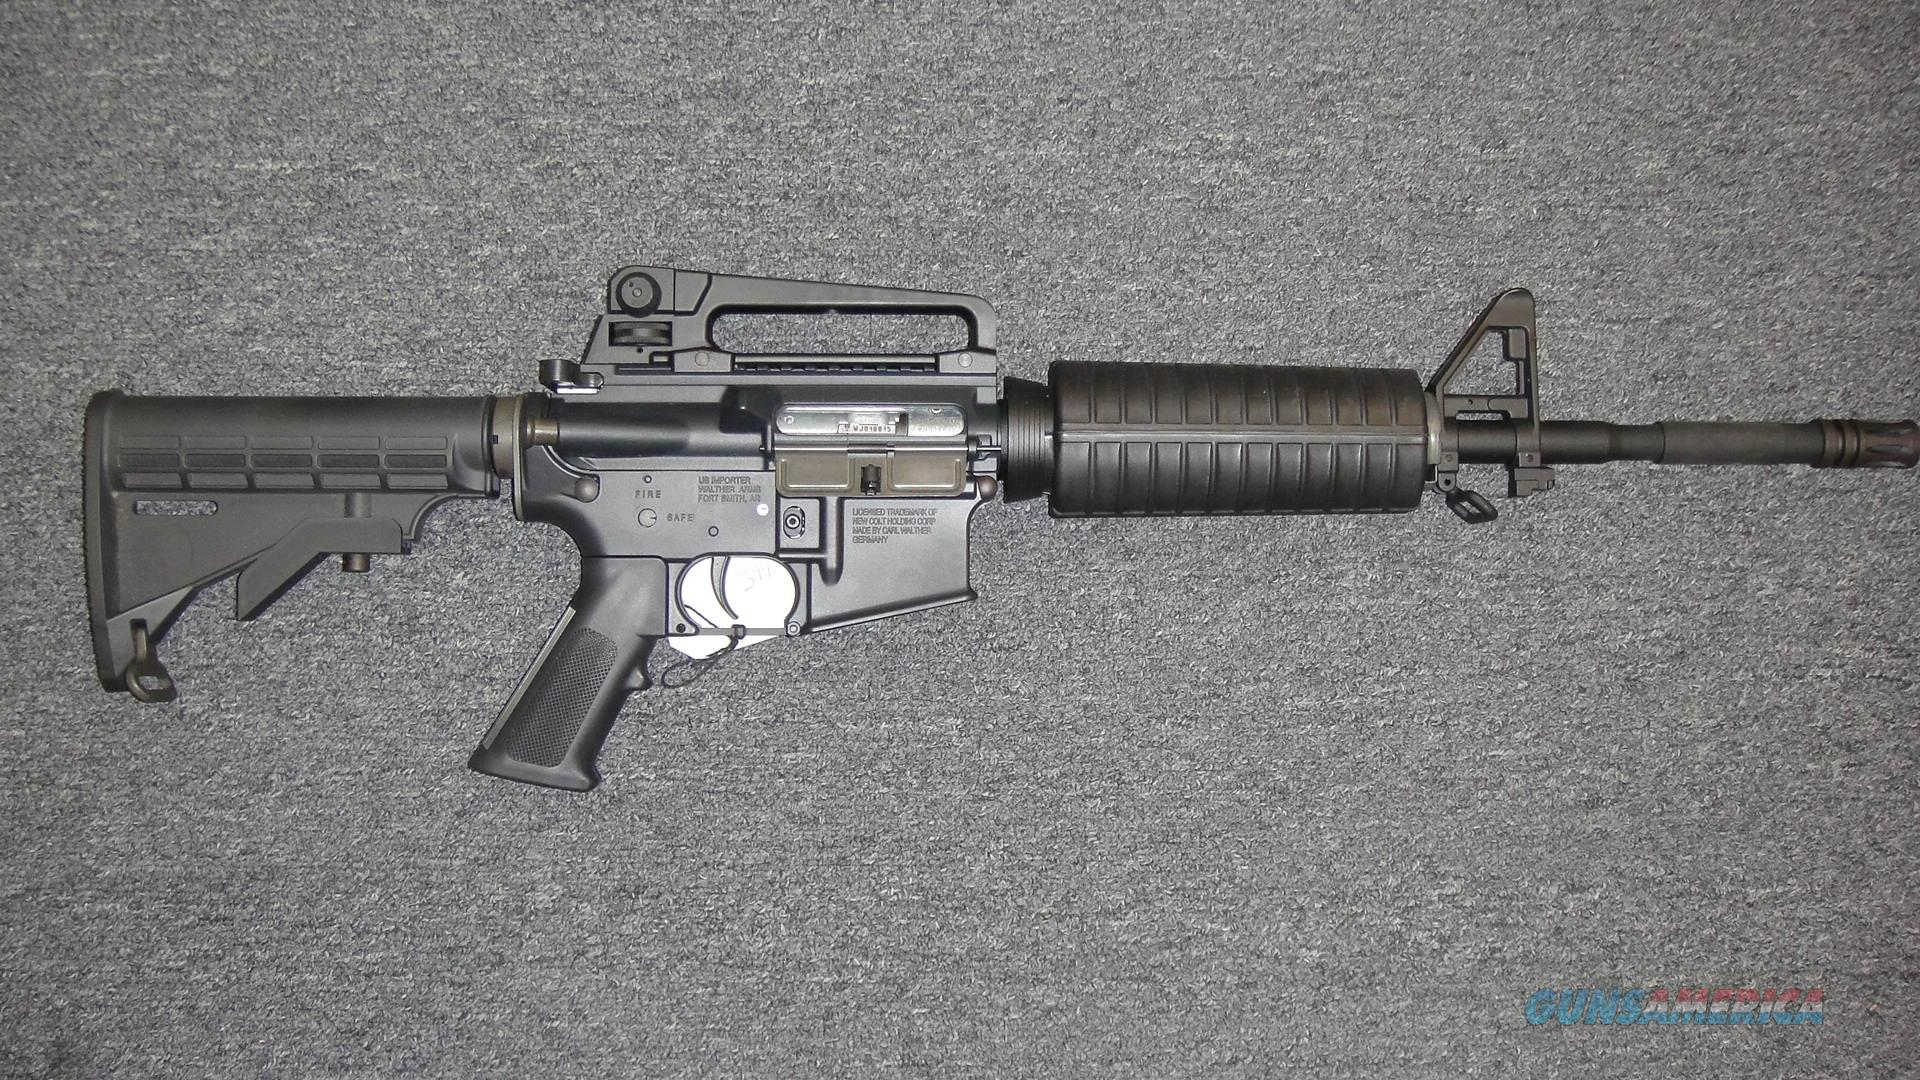 Colt M4 Carbine .22LR  Guns > Rifles > Colt Military/Tactical Rifles